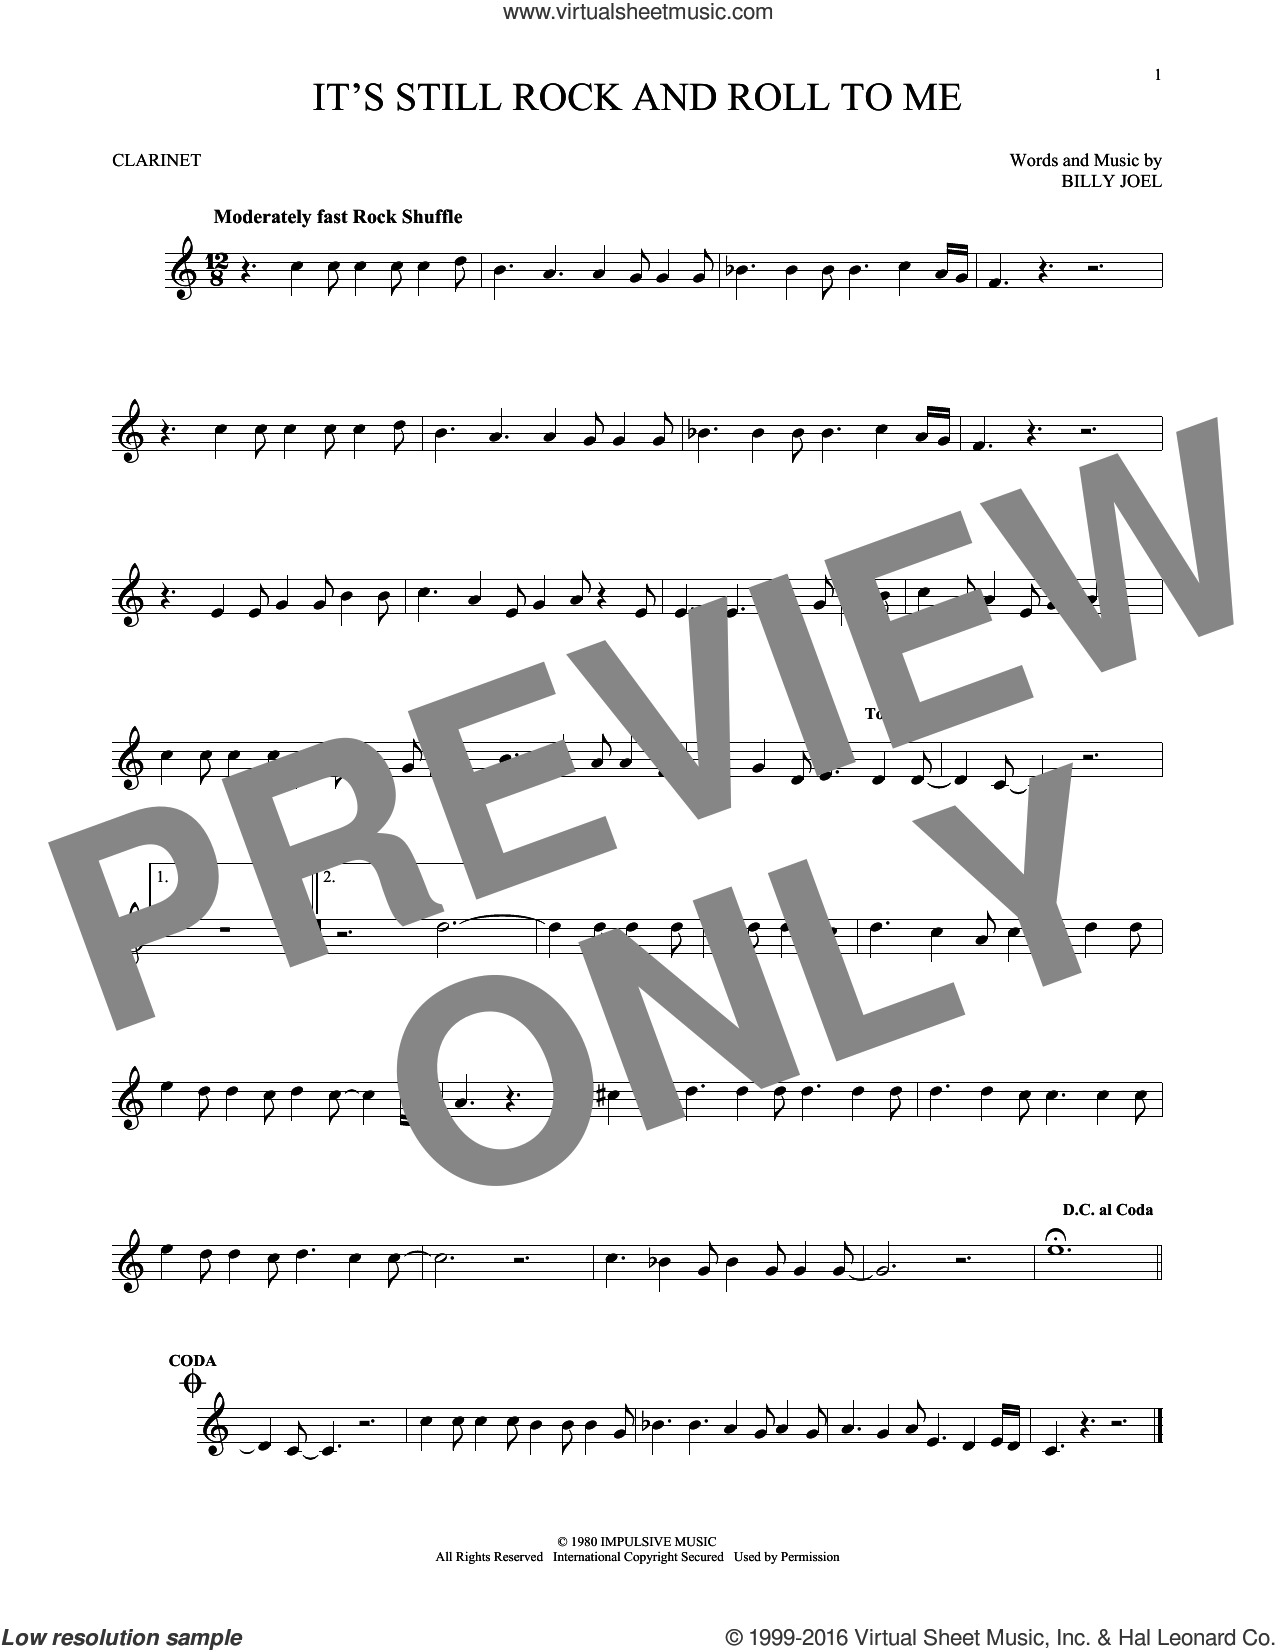 It's Still Rock And Roll To Me sheet music for clarinet solo by Billy Joel. Score Image Preview.